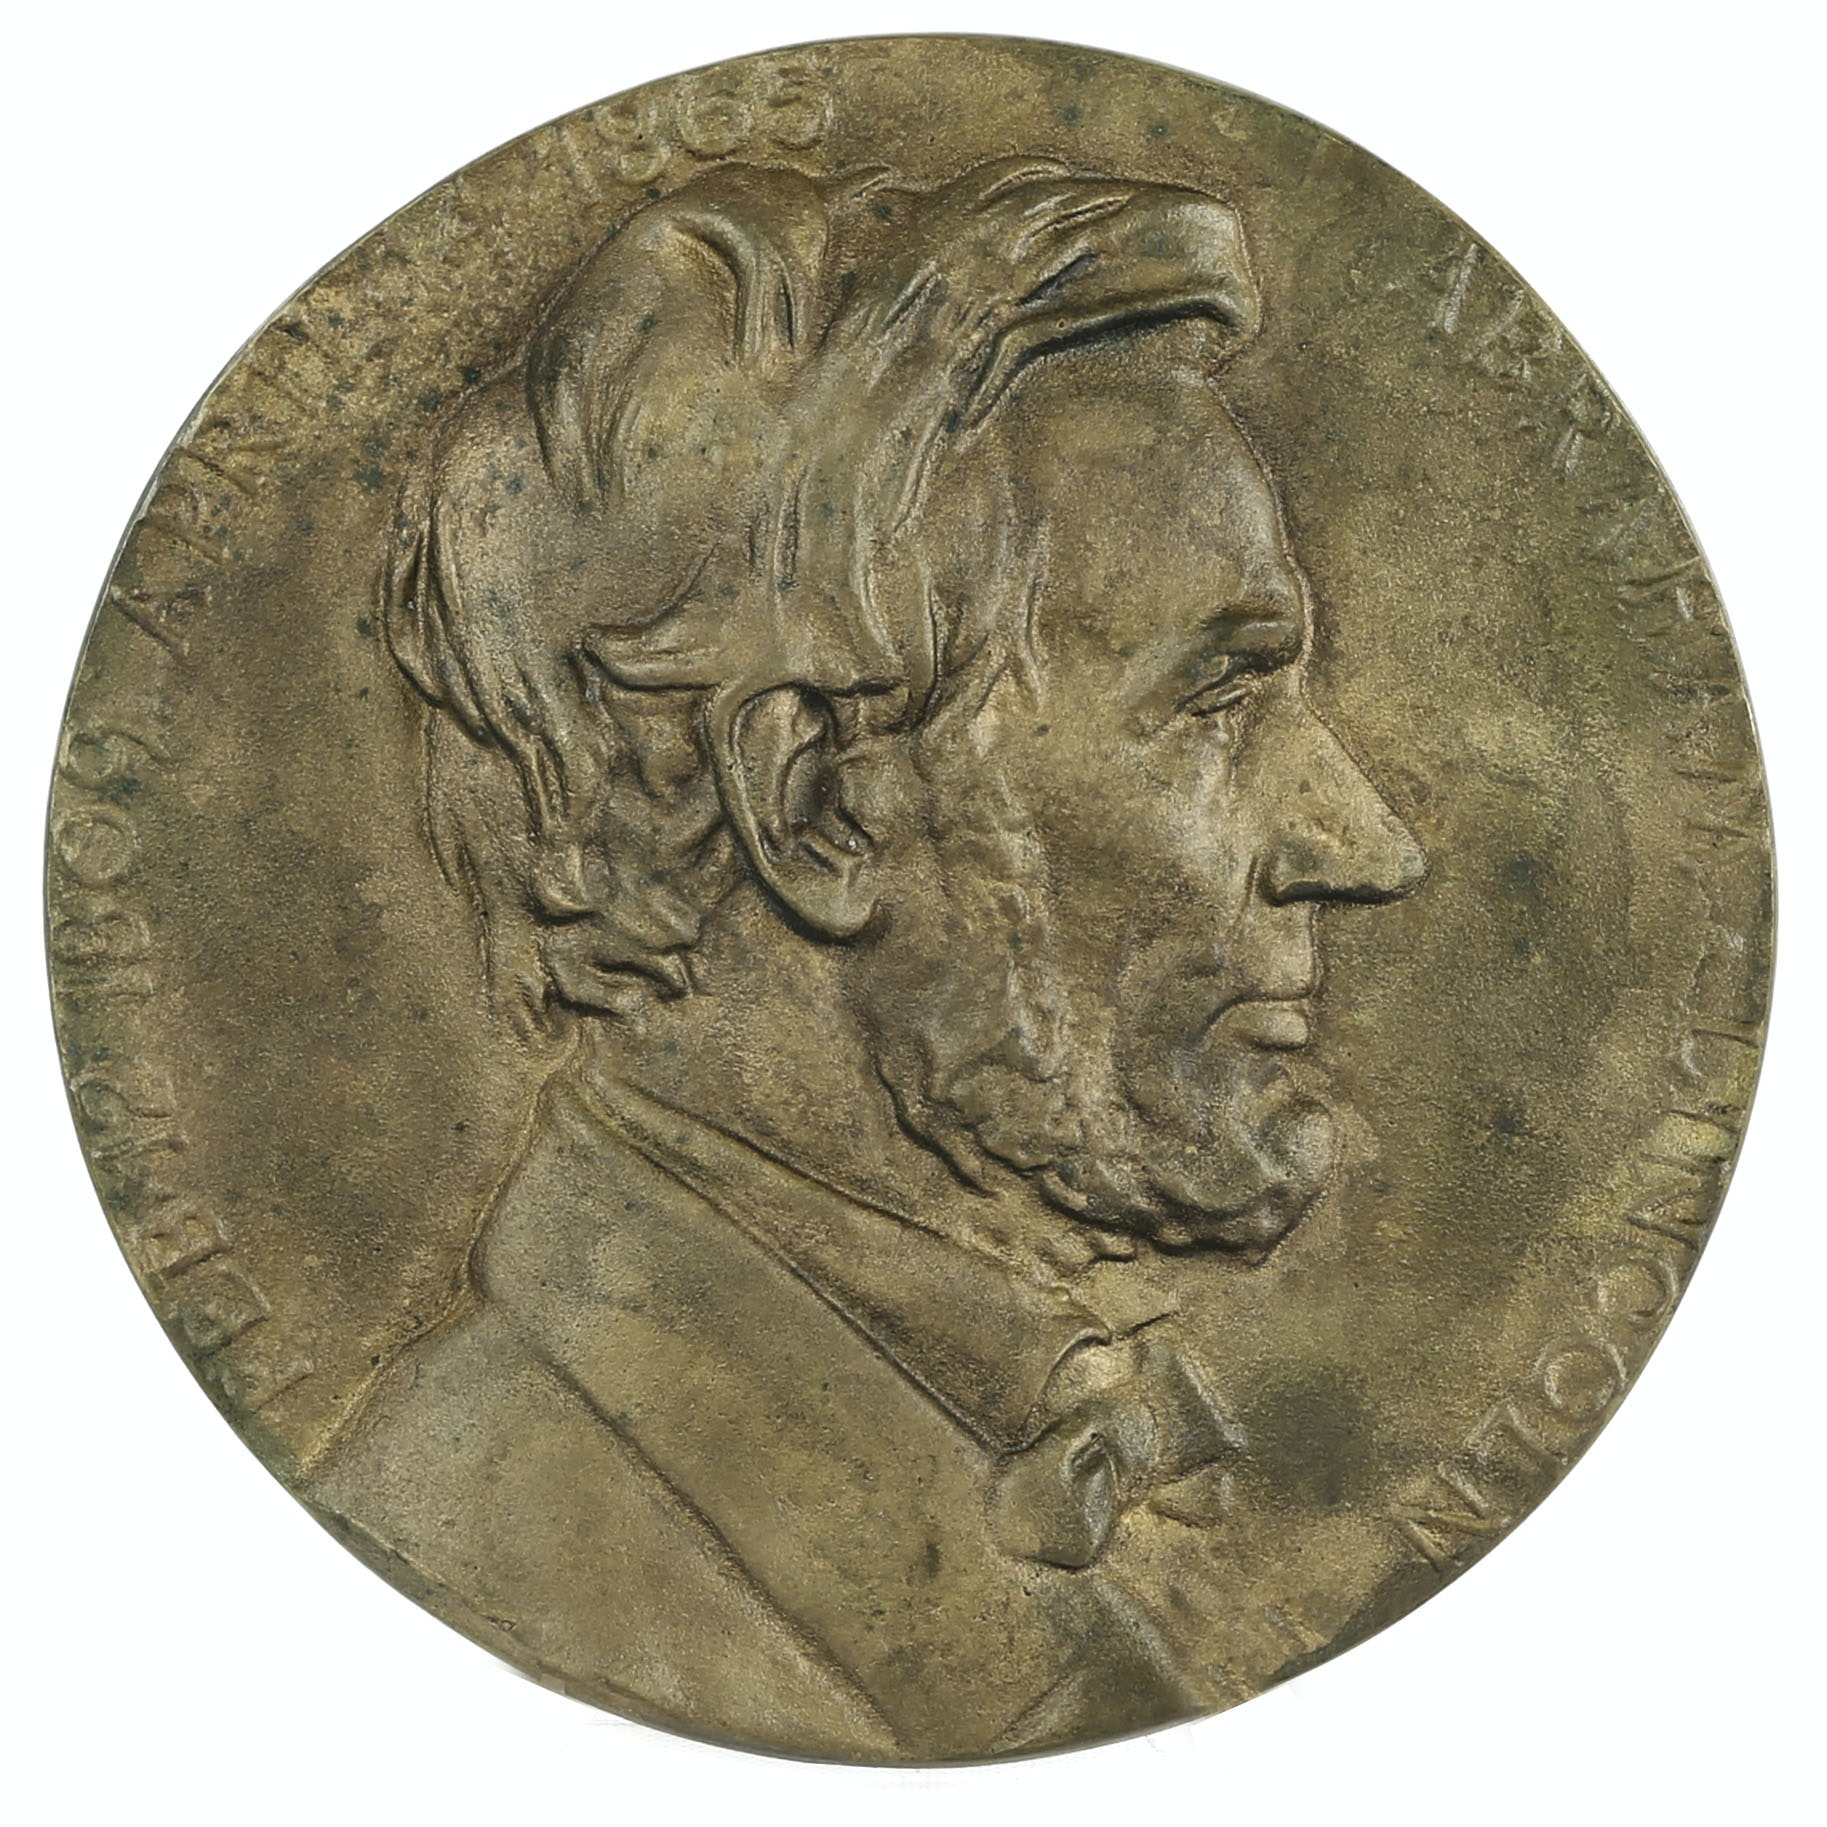 After Charles Calverley Bronze Abraham Lincoln Memorial Plaque